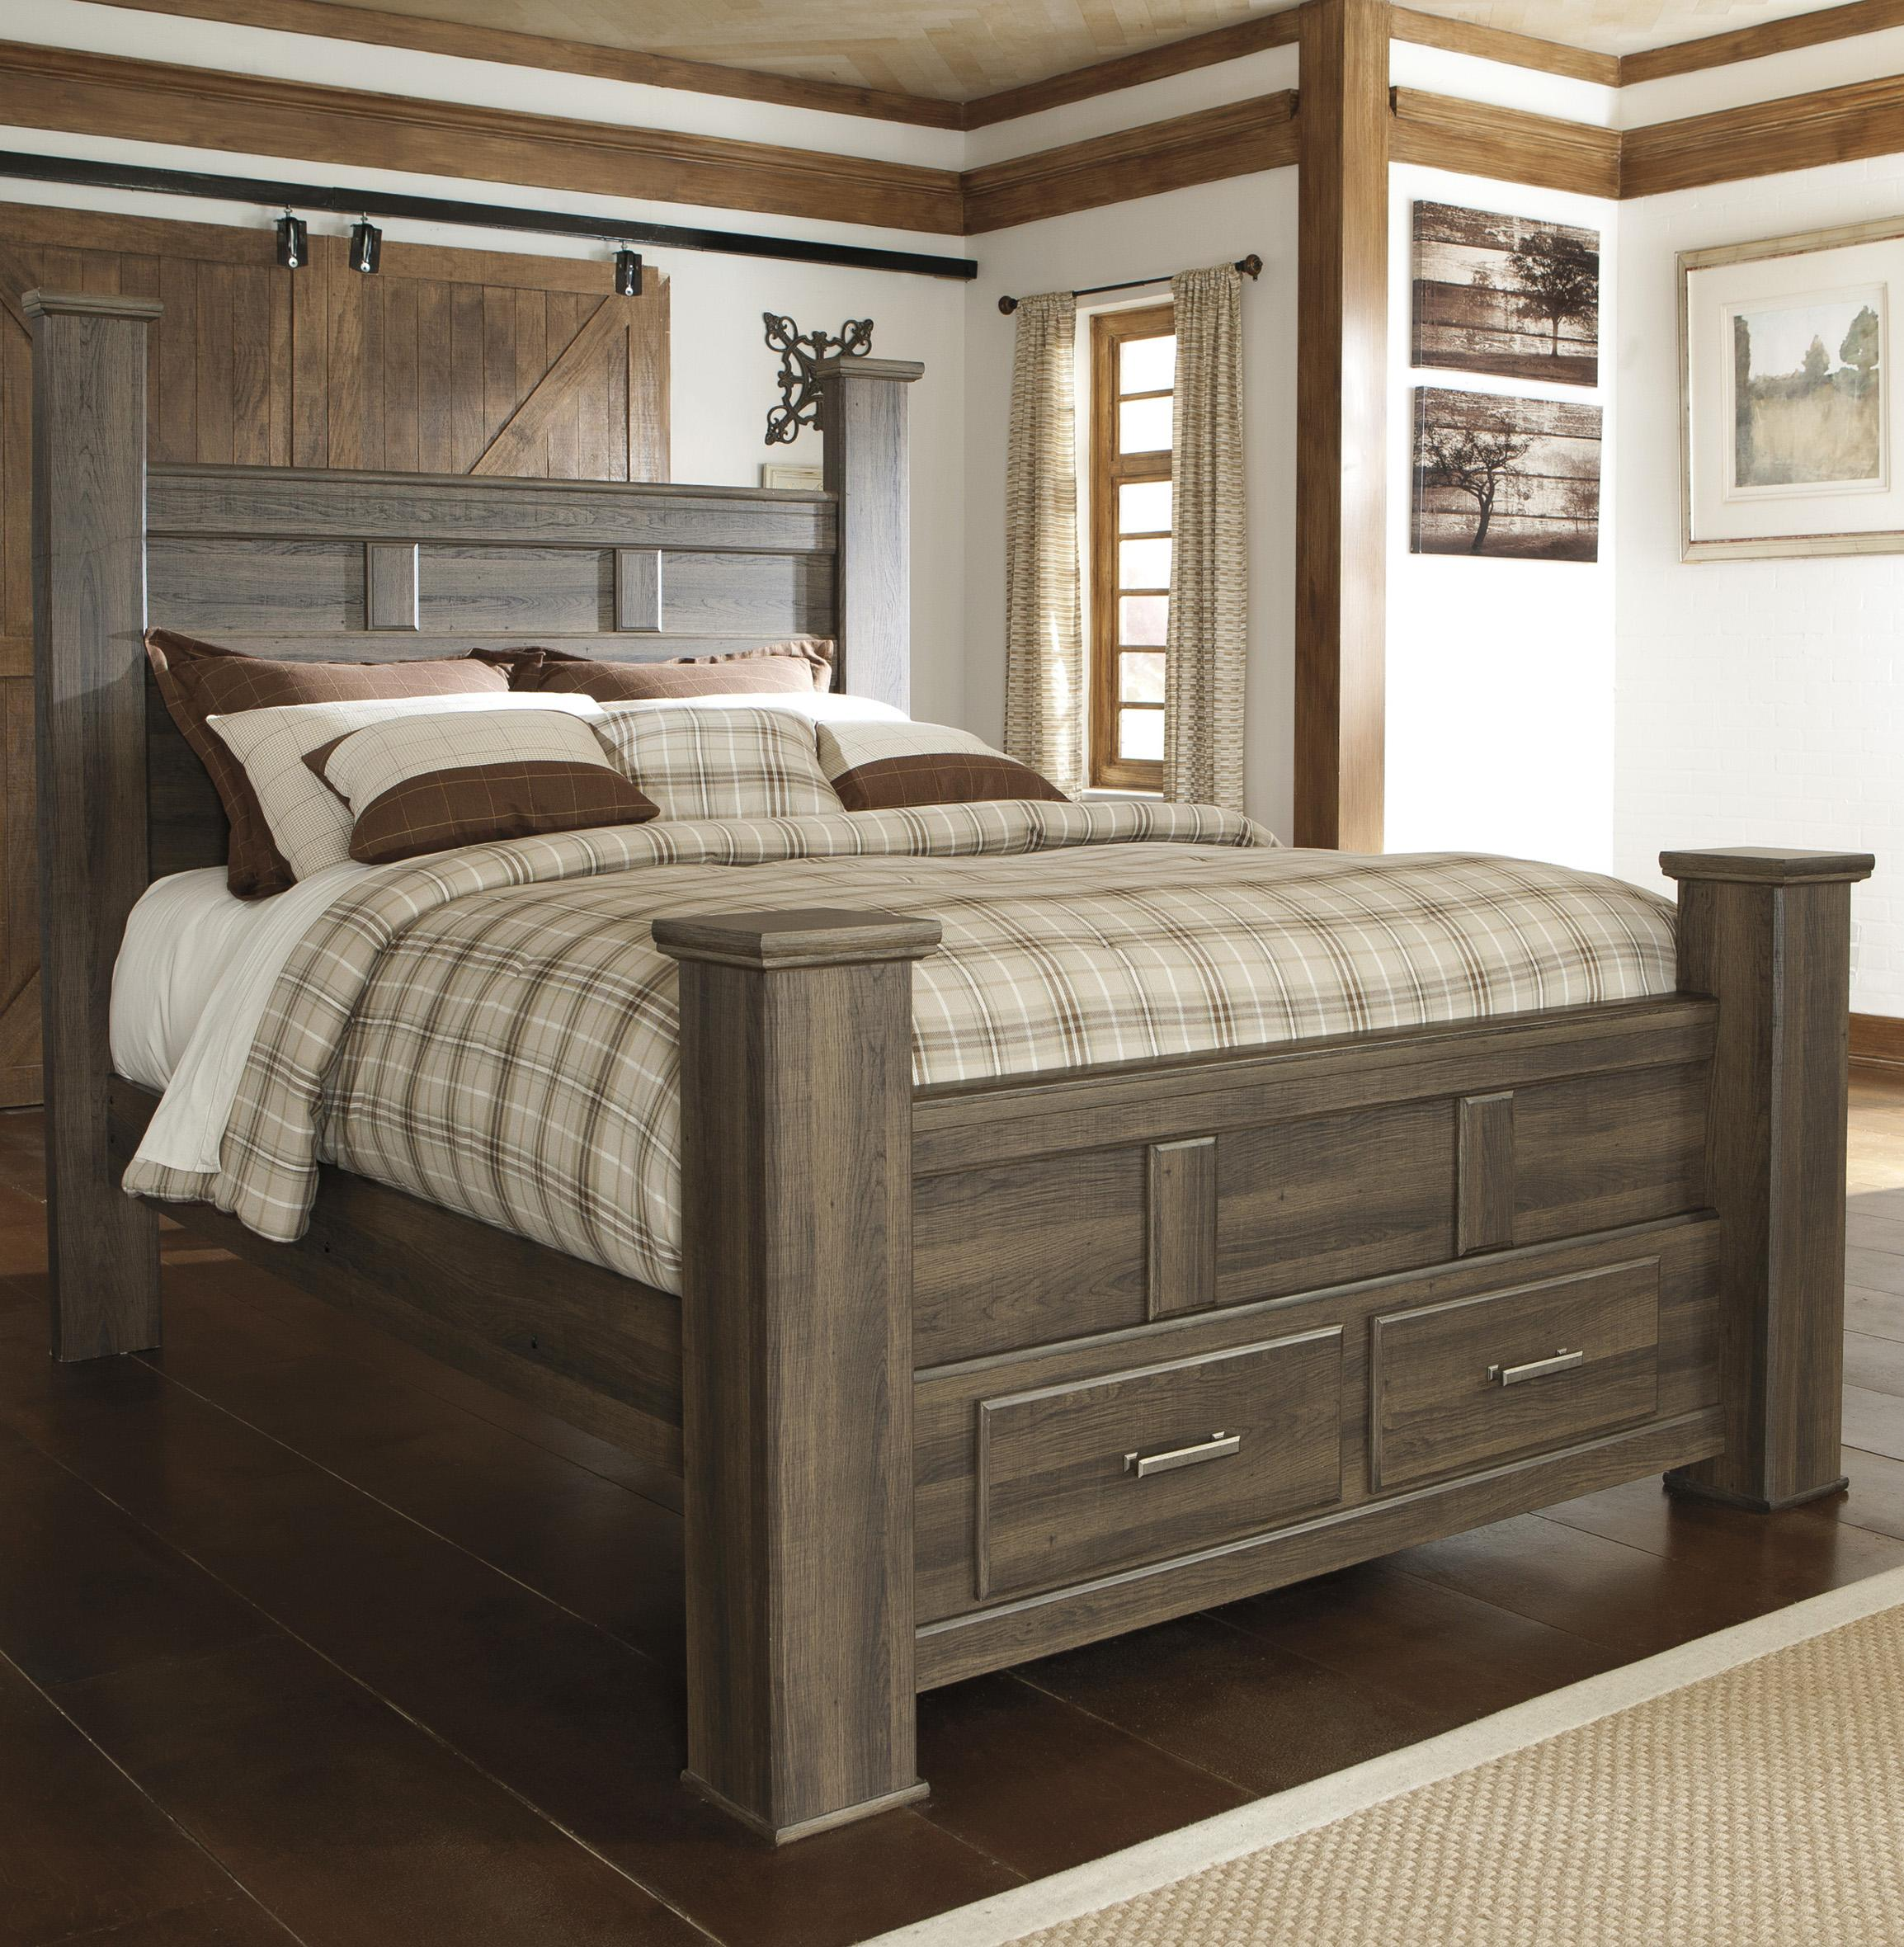 Signature design by ashley juararo transitional queen - Ashley furniture full bedroom sets ...